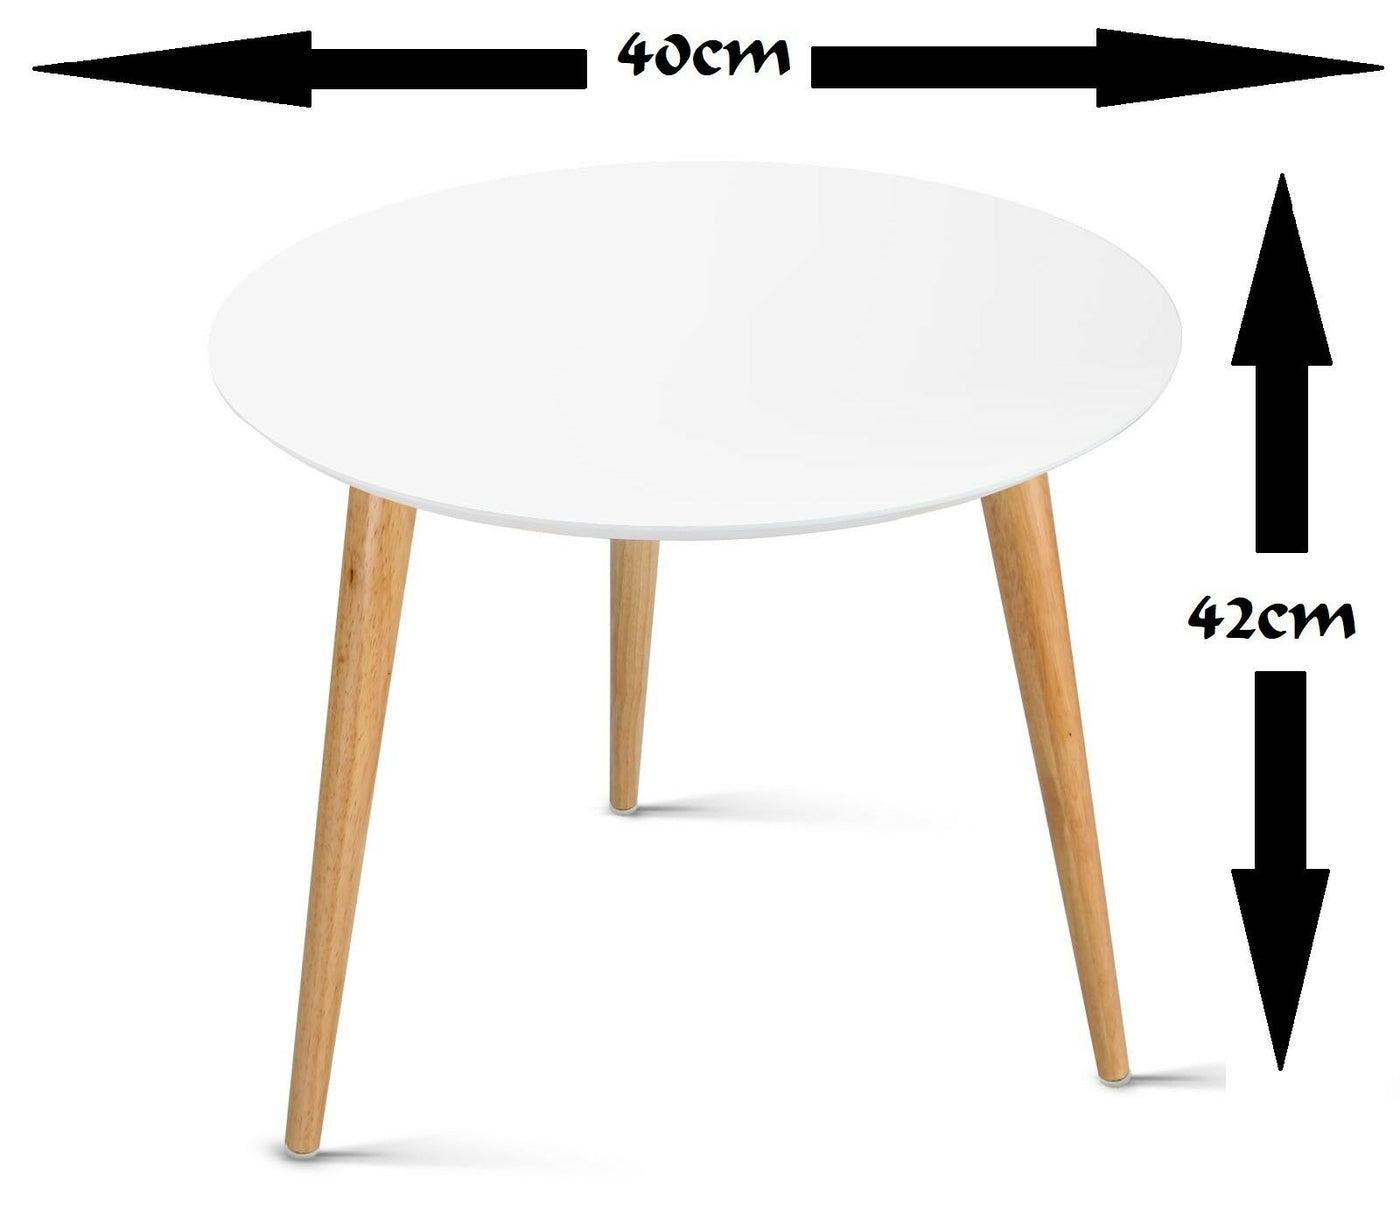 MODERN SIDE TABLE COFFEE TABLE BEDSIDE ROUND LAMP OFFICE HOME FURNITURE WOOD